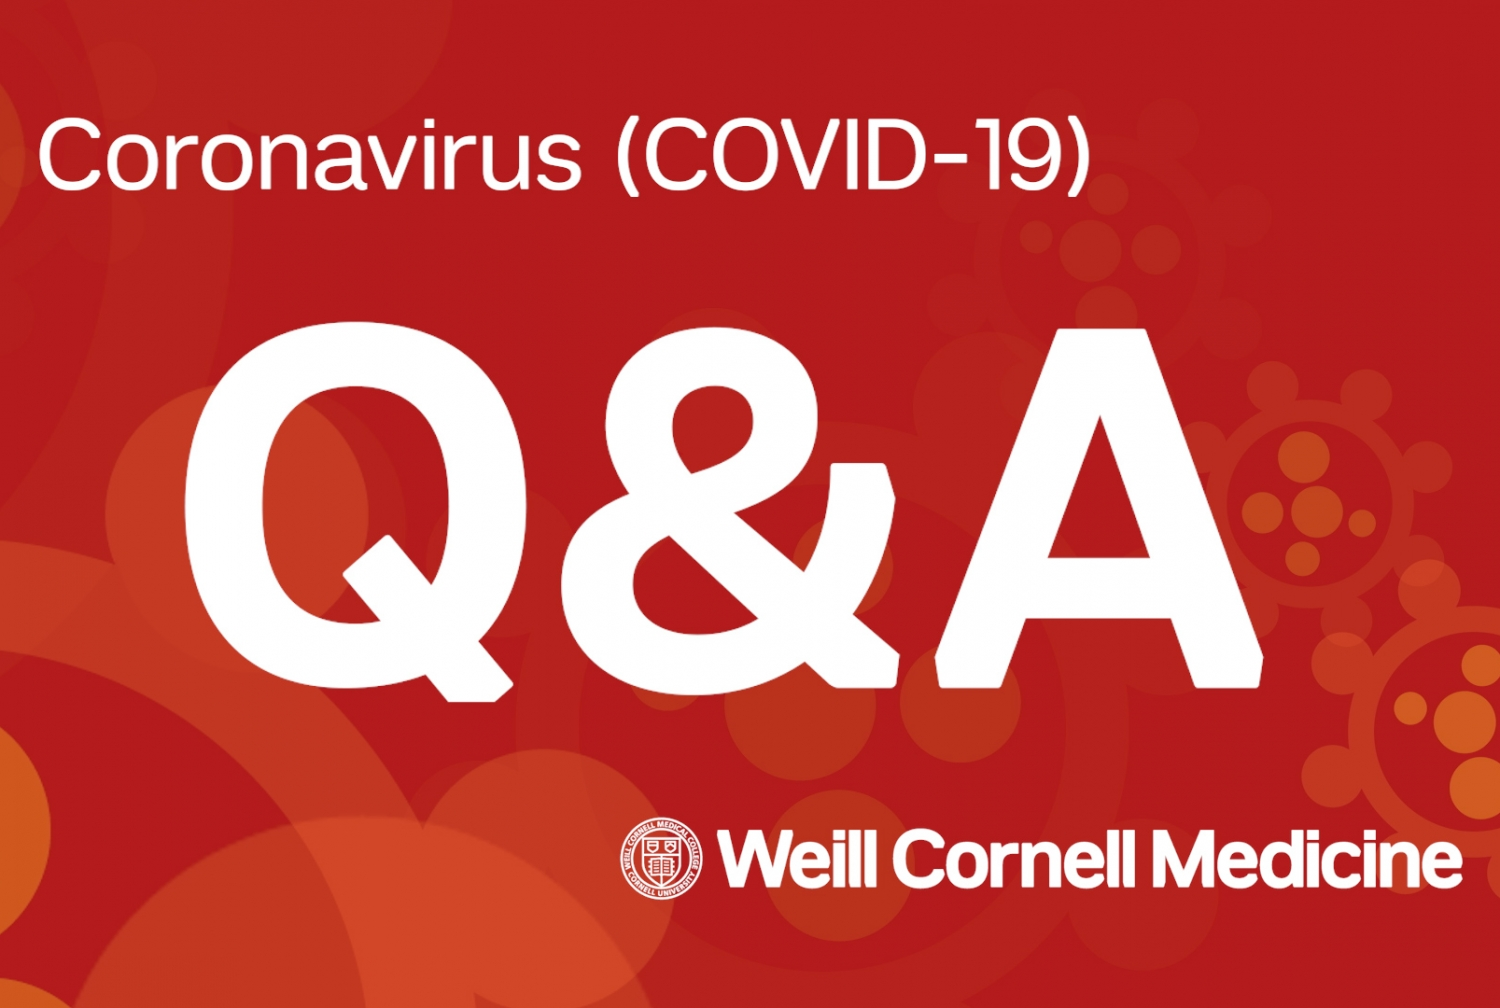 COVID-19 question and answer illustration